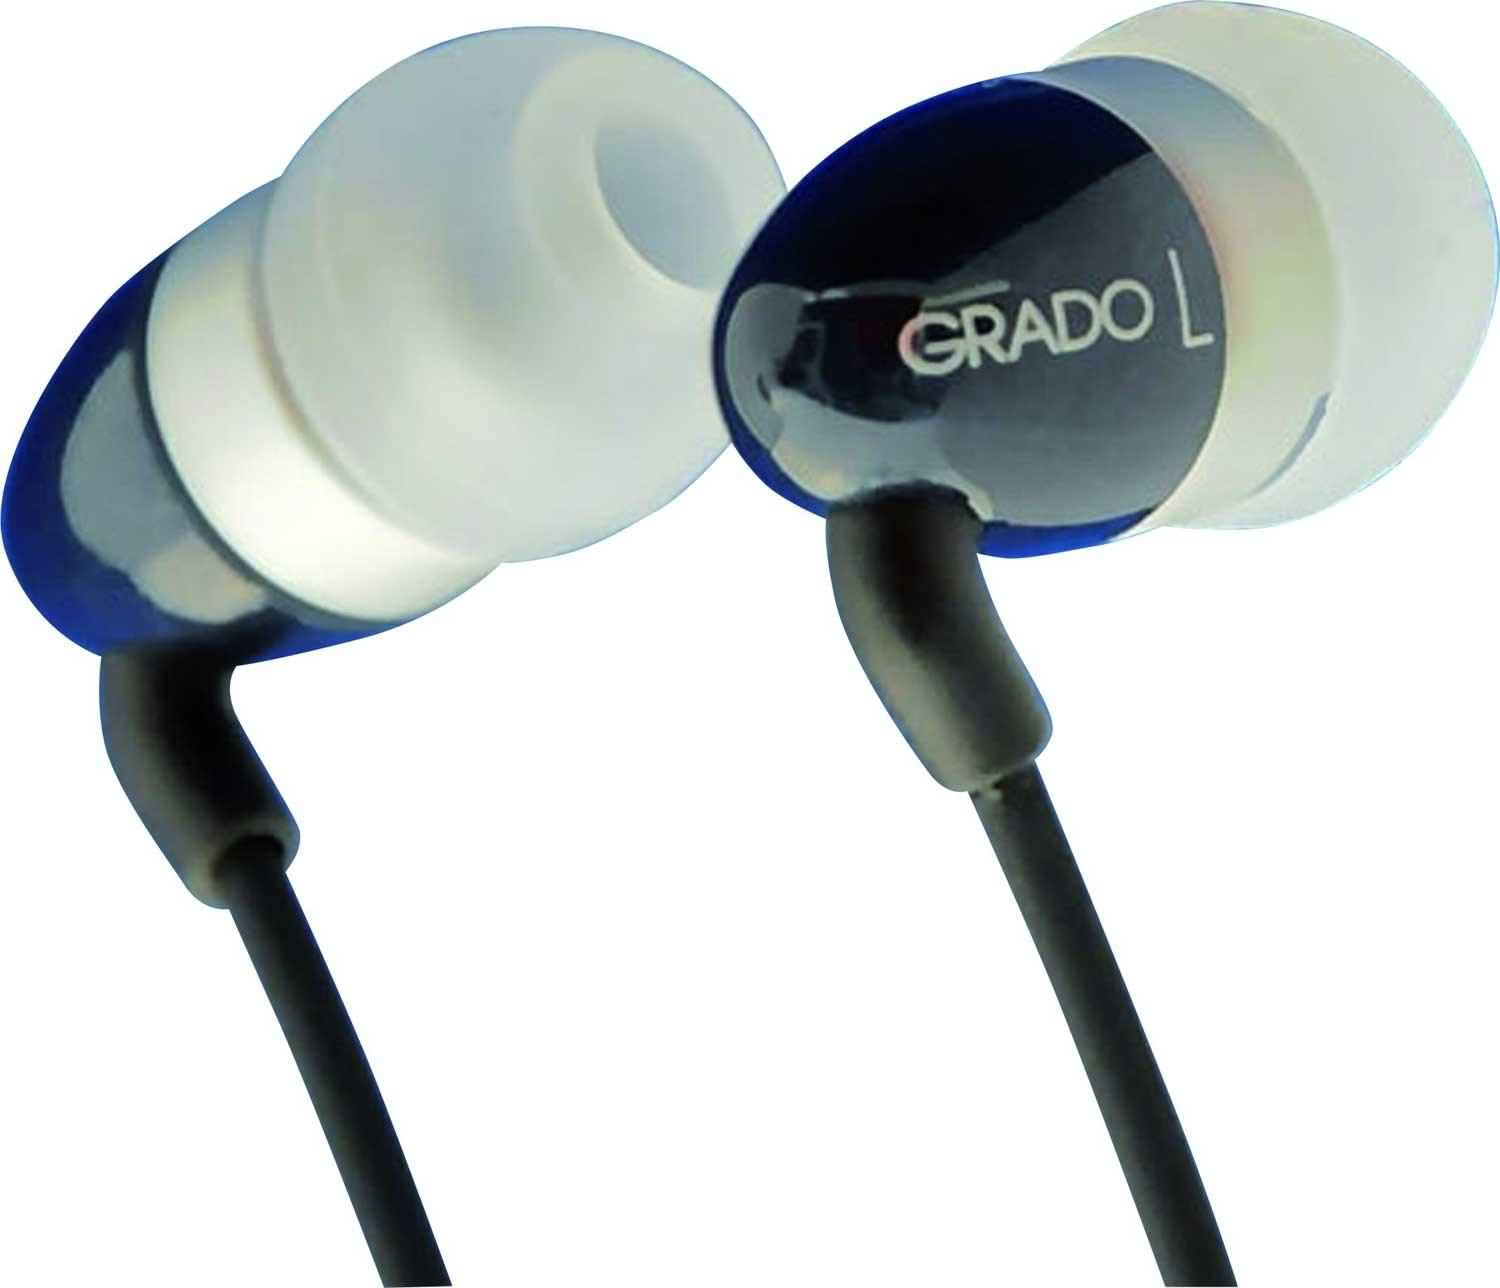 GR8 STEREO HIFI & IPOD IN-EAR PHONES